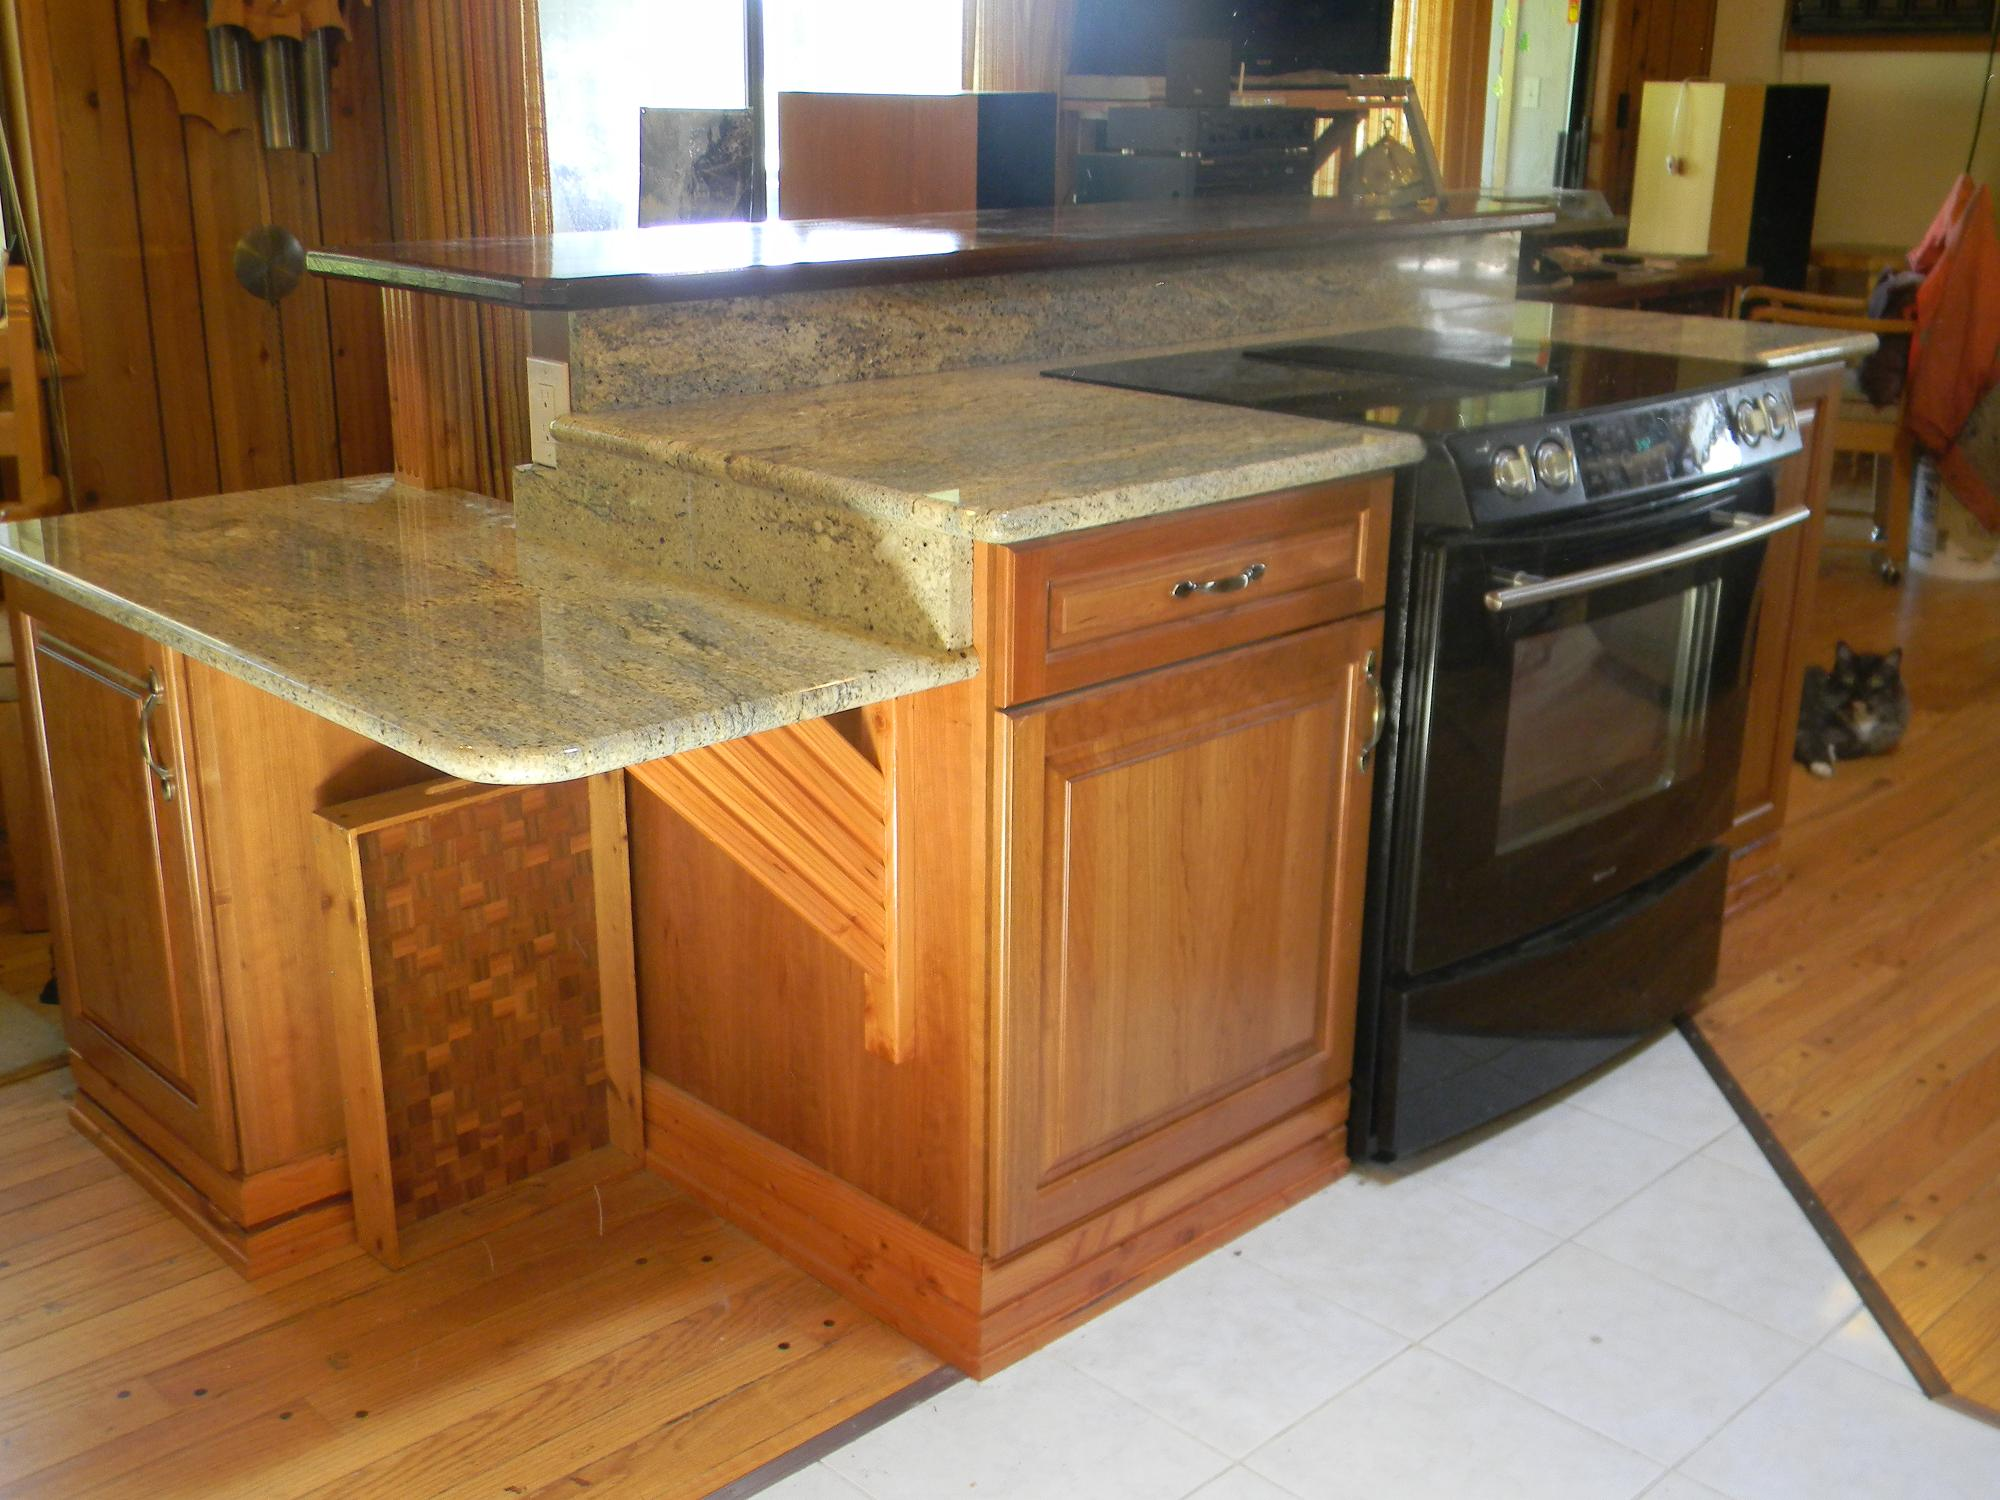 Accessible kitchenswheelchair kitchen design handicapped wallpapers lover - Accessible kitchen design ...